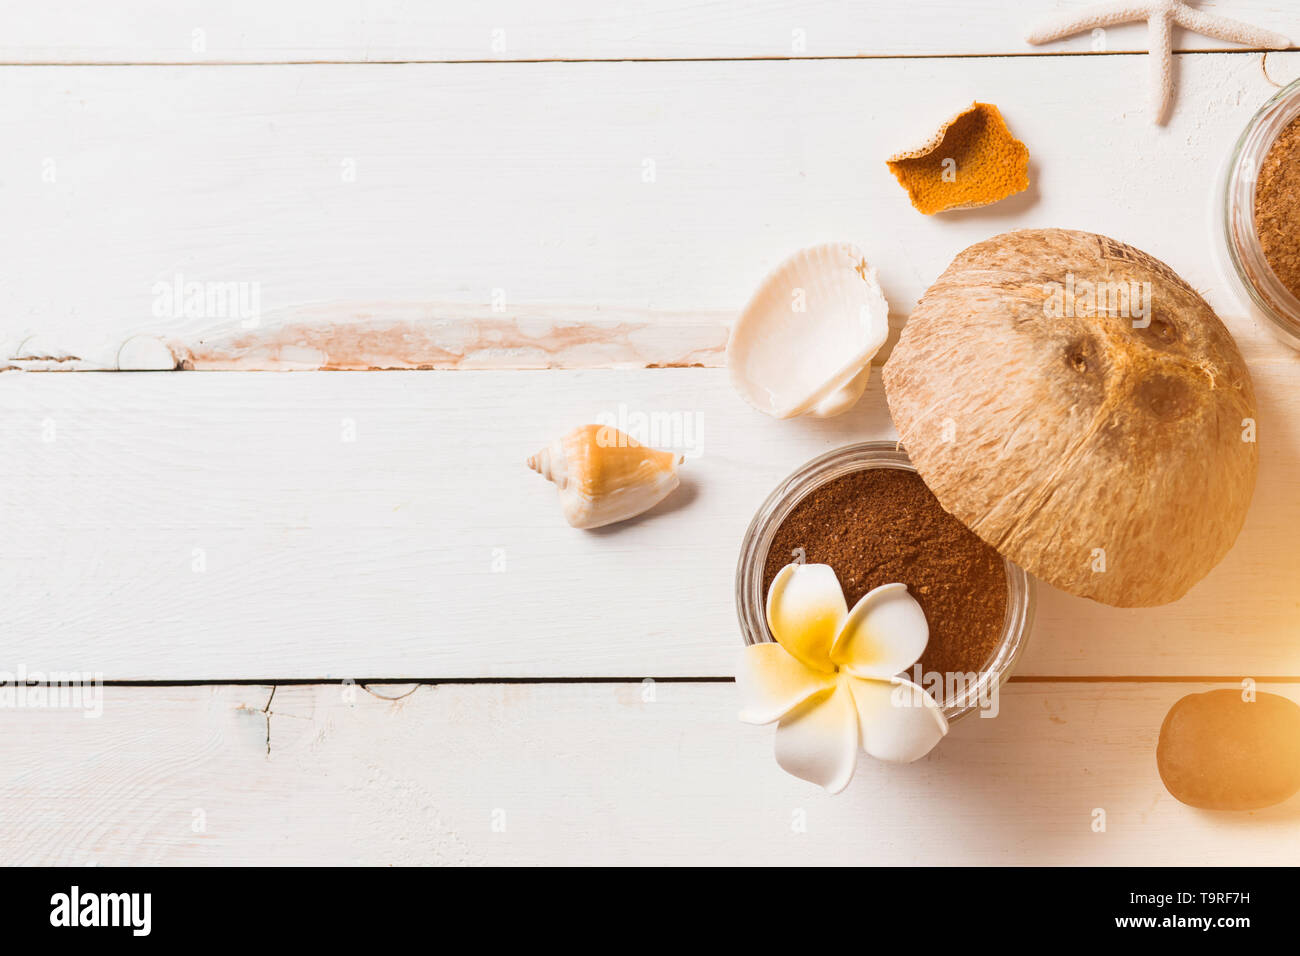 Spa decoration, natural organic body care products. Beautiful composition with coconut, coffee scrub, flower, sea shell, white towel on vintage wooden Stock Photo